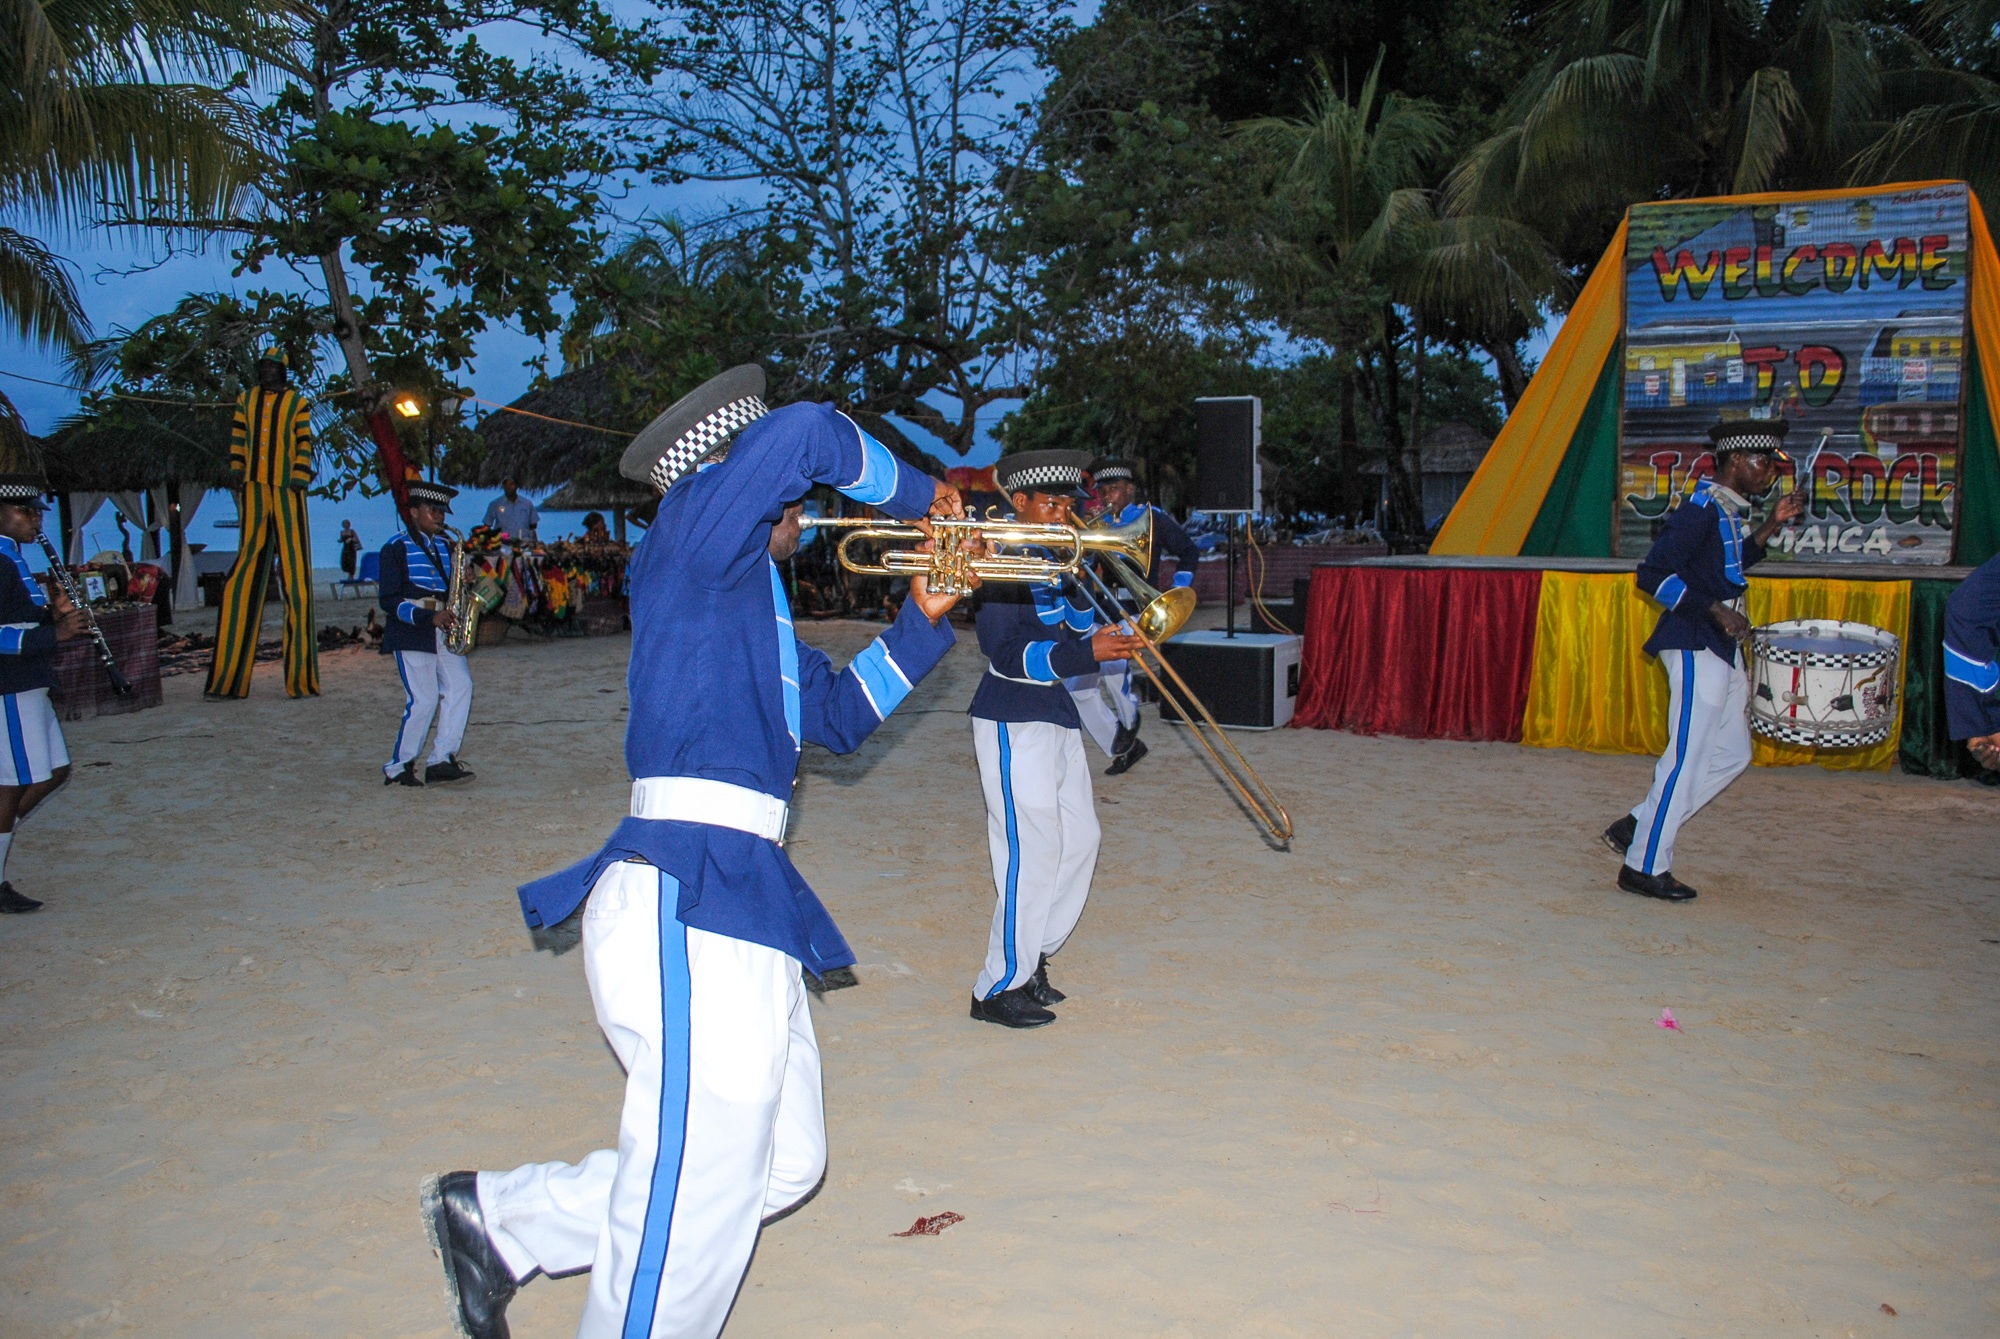 Local youth marching band performing on the sand in Jamaica